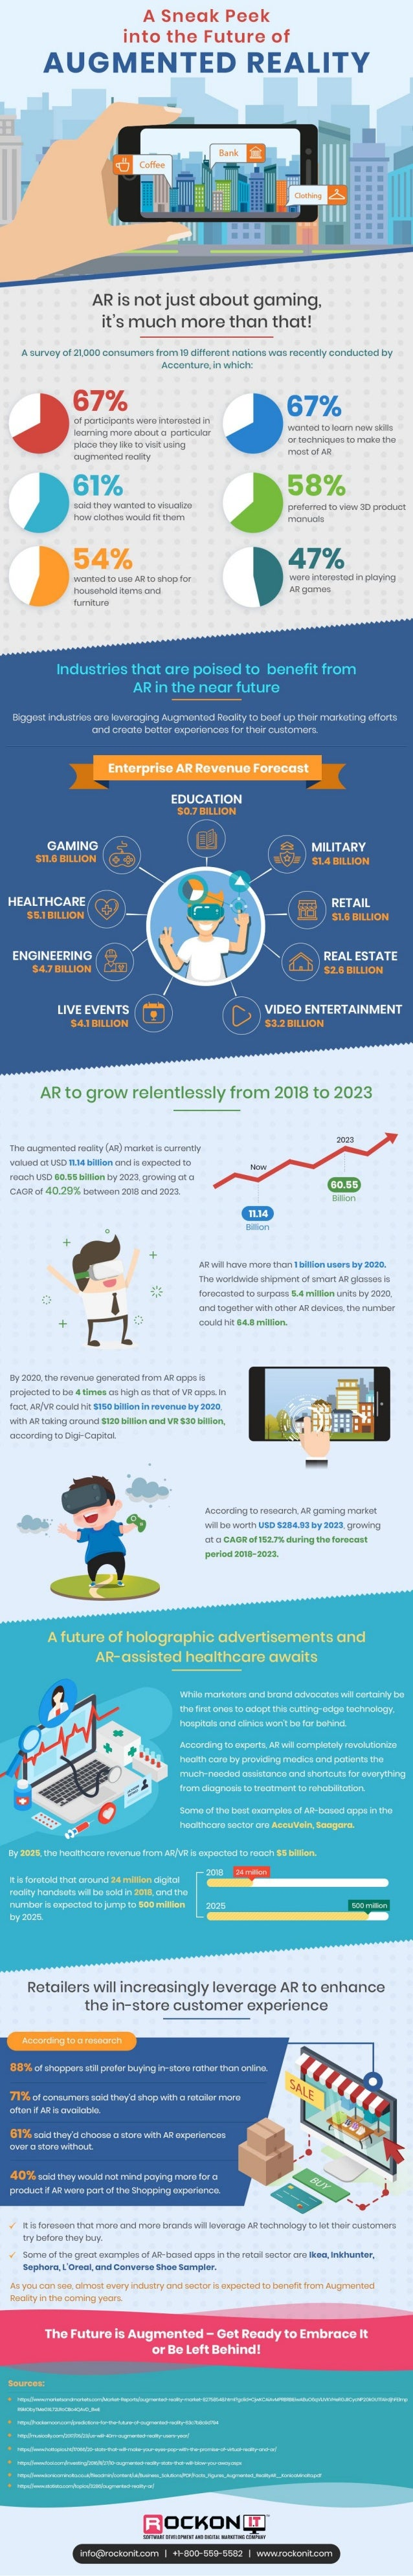 A Glance at the Bright-looking Future of Augmented Reality - Infographic